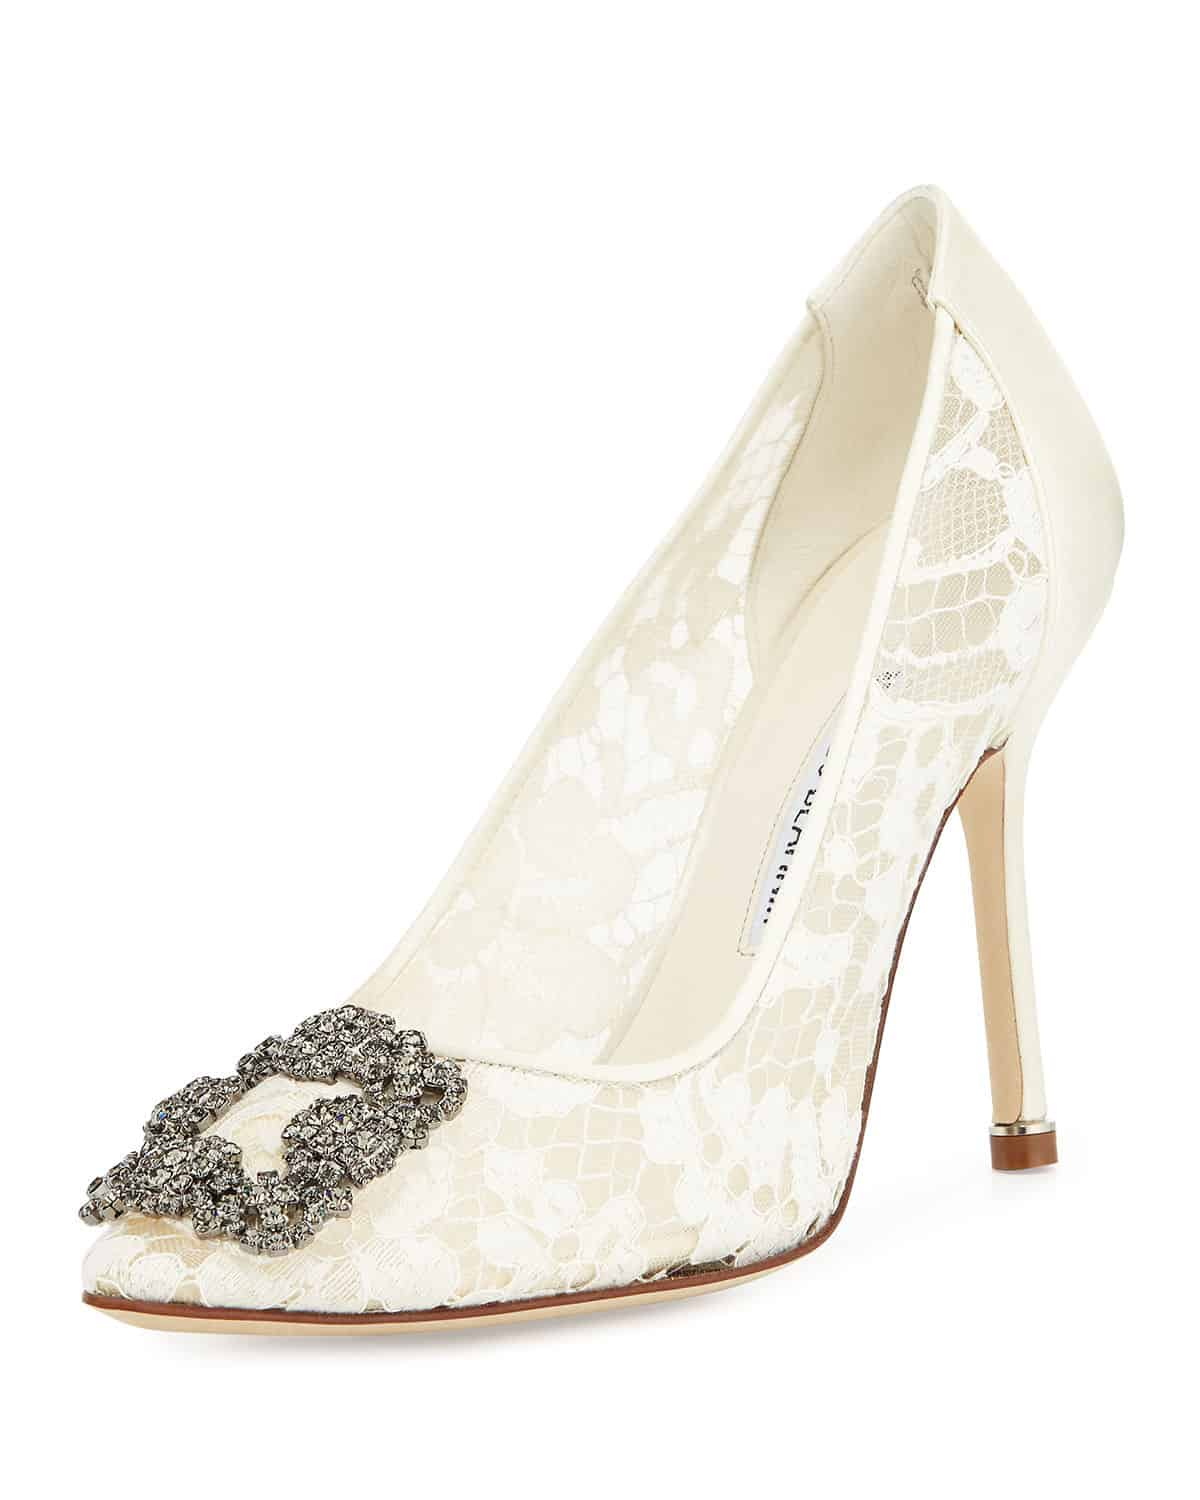 Manolo blahnik wedding shoes stylin on your big day hangisi floral lace crystal toe pump monolo blahnik lace bridal pump junglespirit Gallery